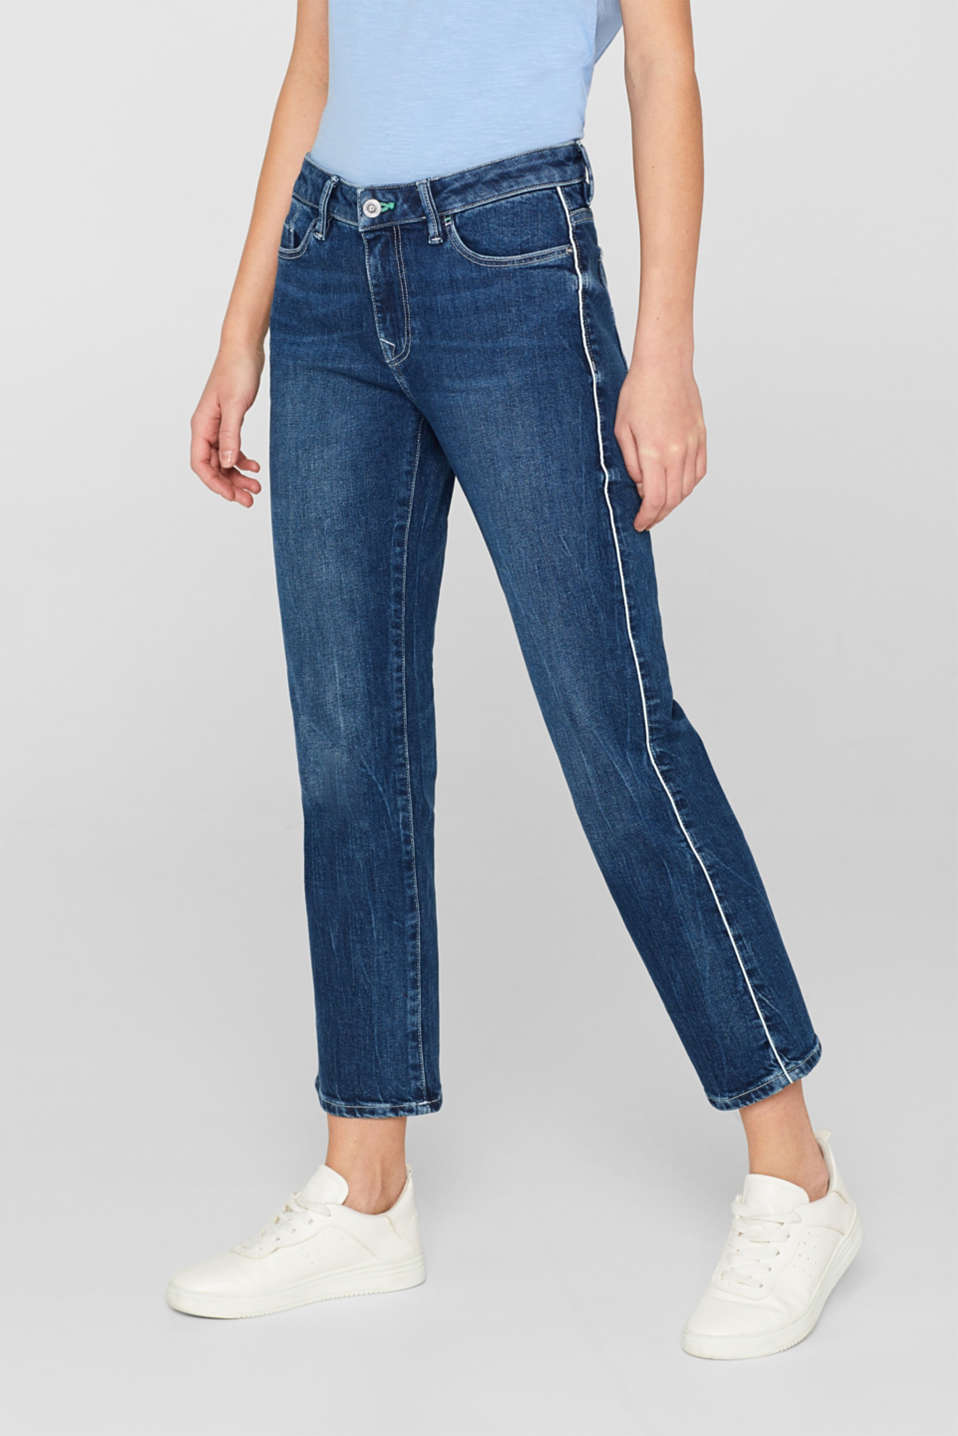 edc - Ankle-length stretch jeans with organic cotton